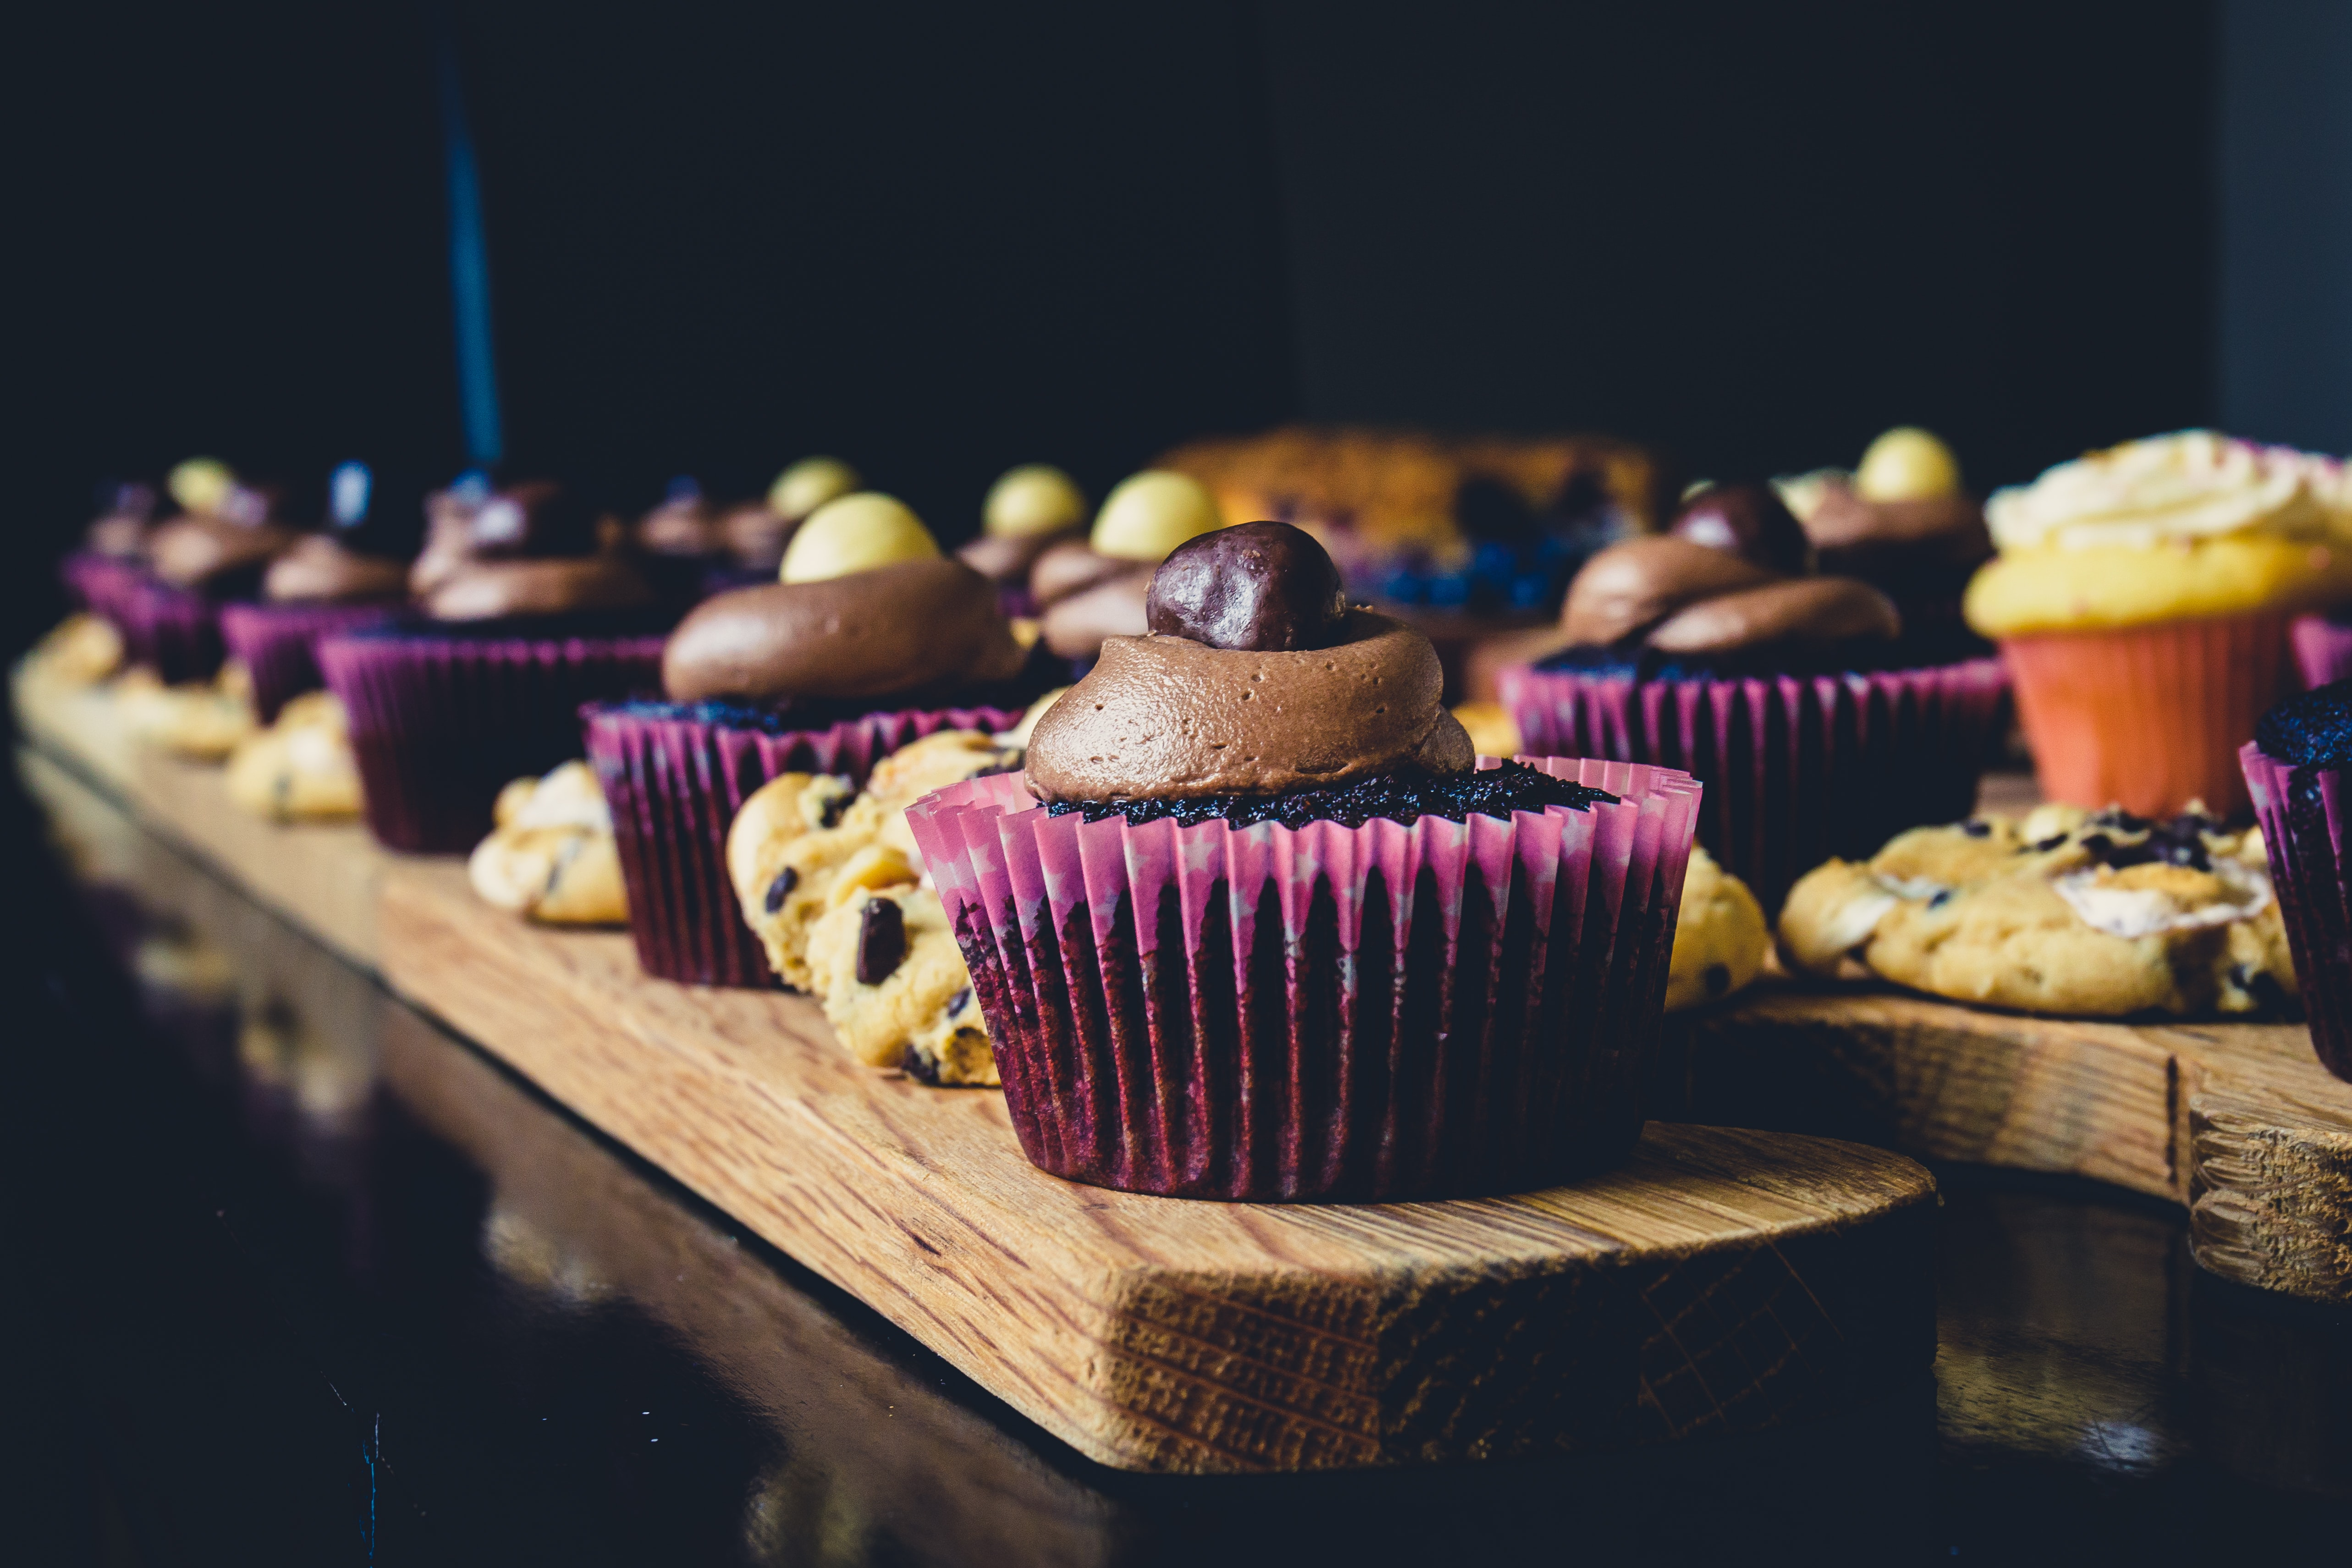 baked cupcakes on brown wooden table